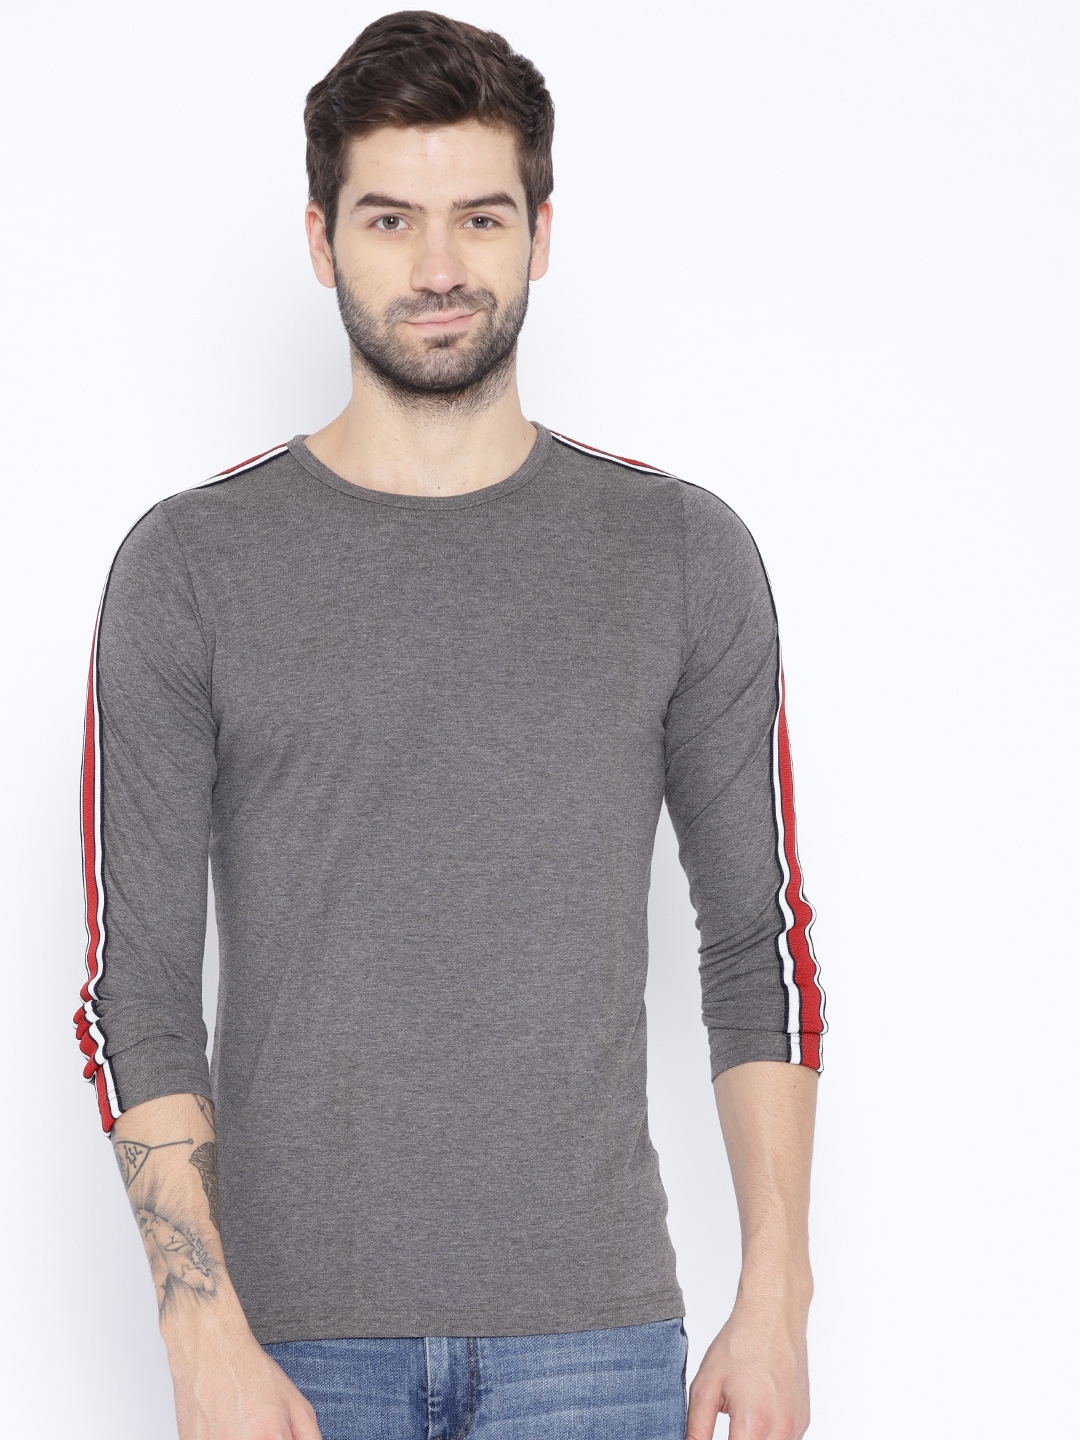 Unisopent Designs Men Charcoal Grey Solid Round Neck T shirt